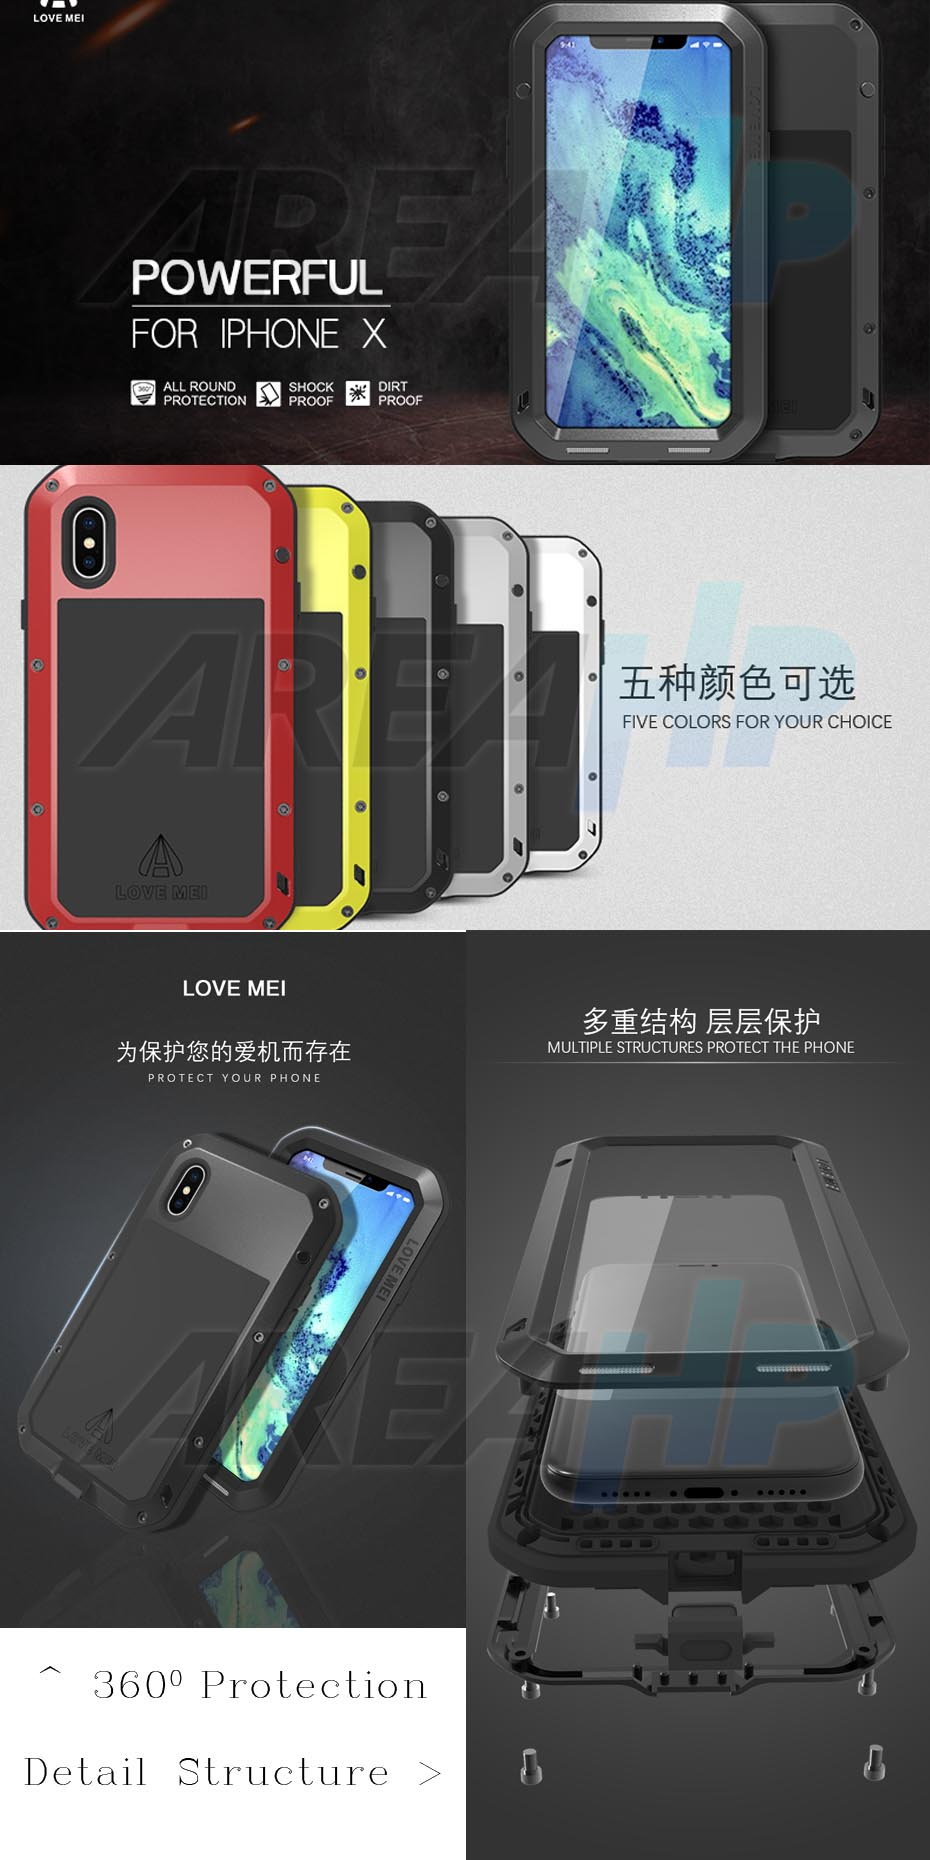 Love Mei Powerful Case for iPhone X Overview